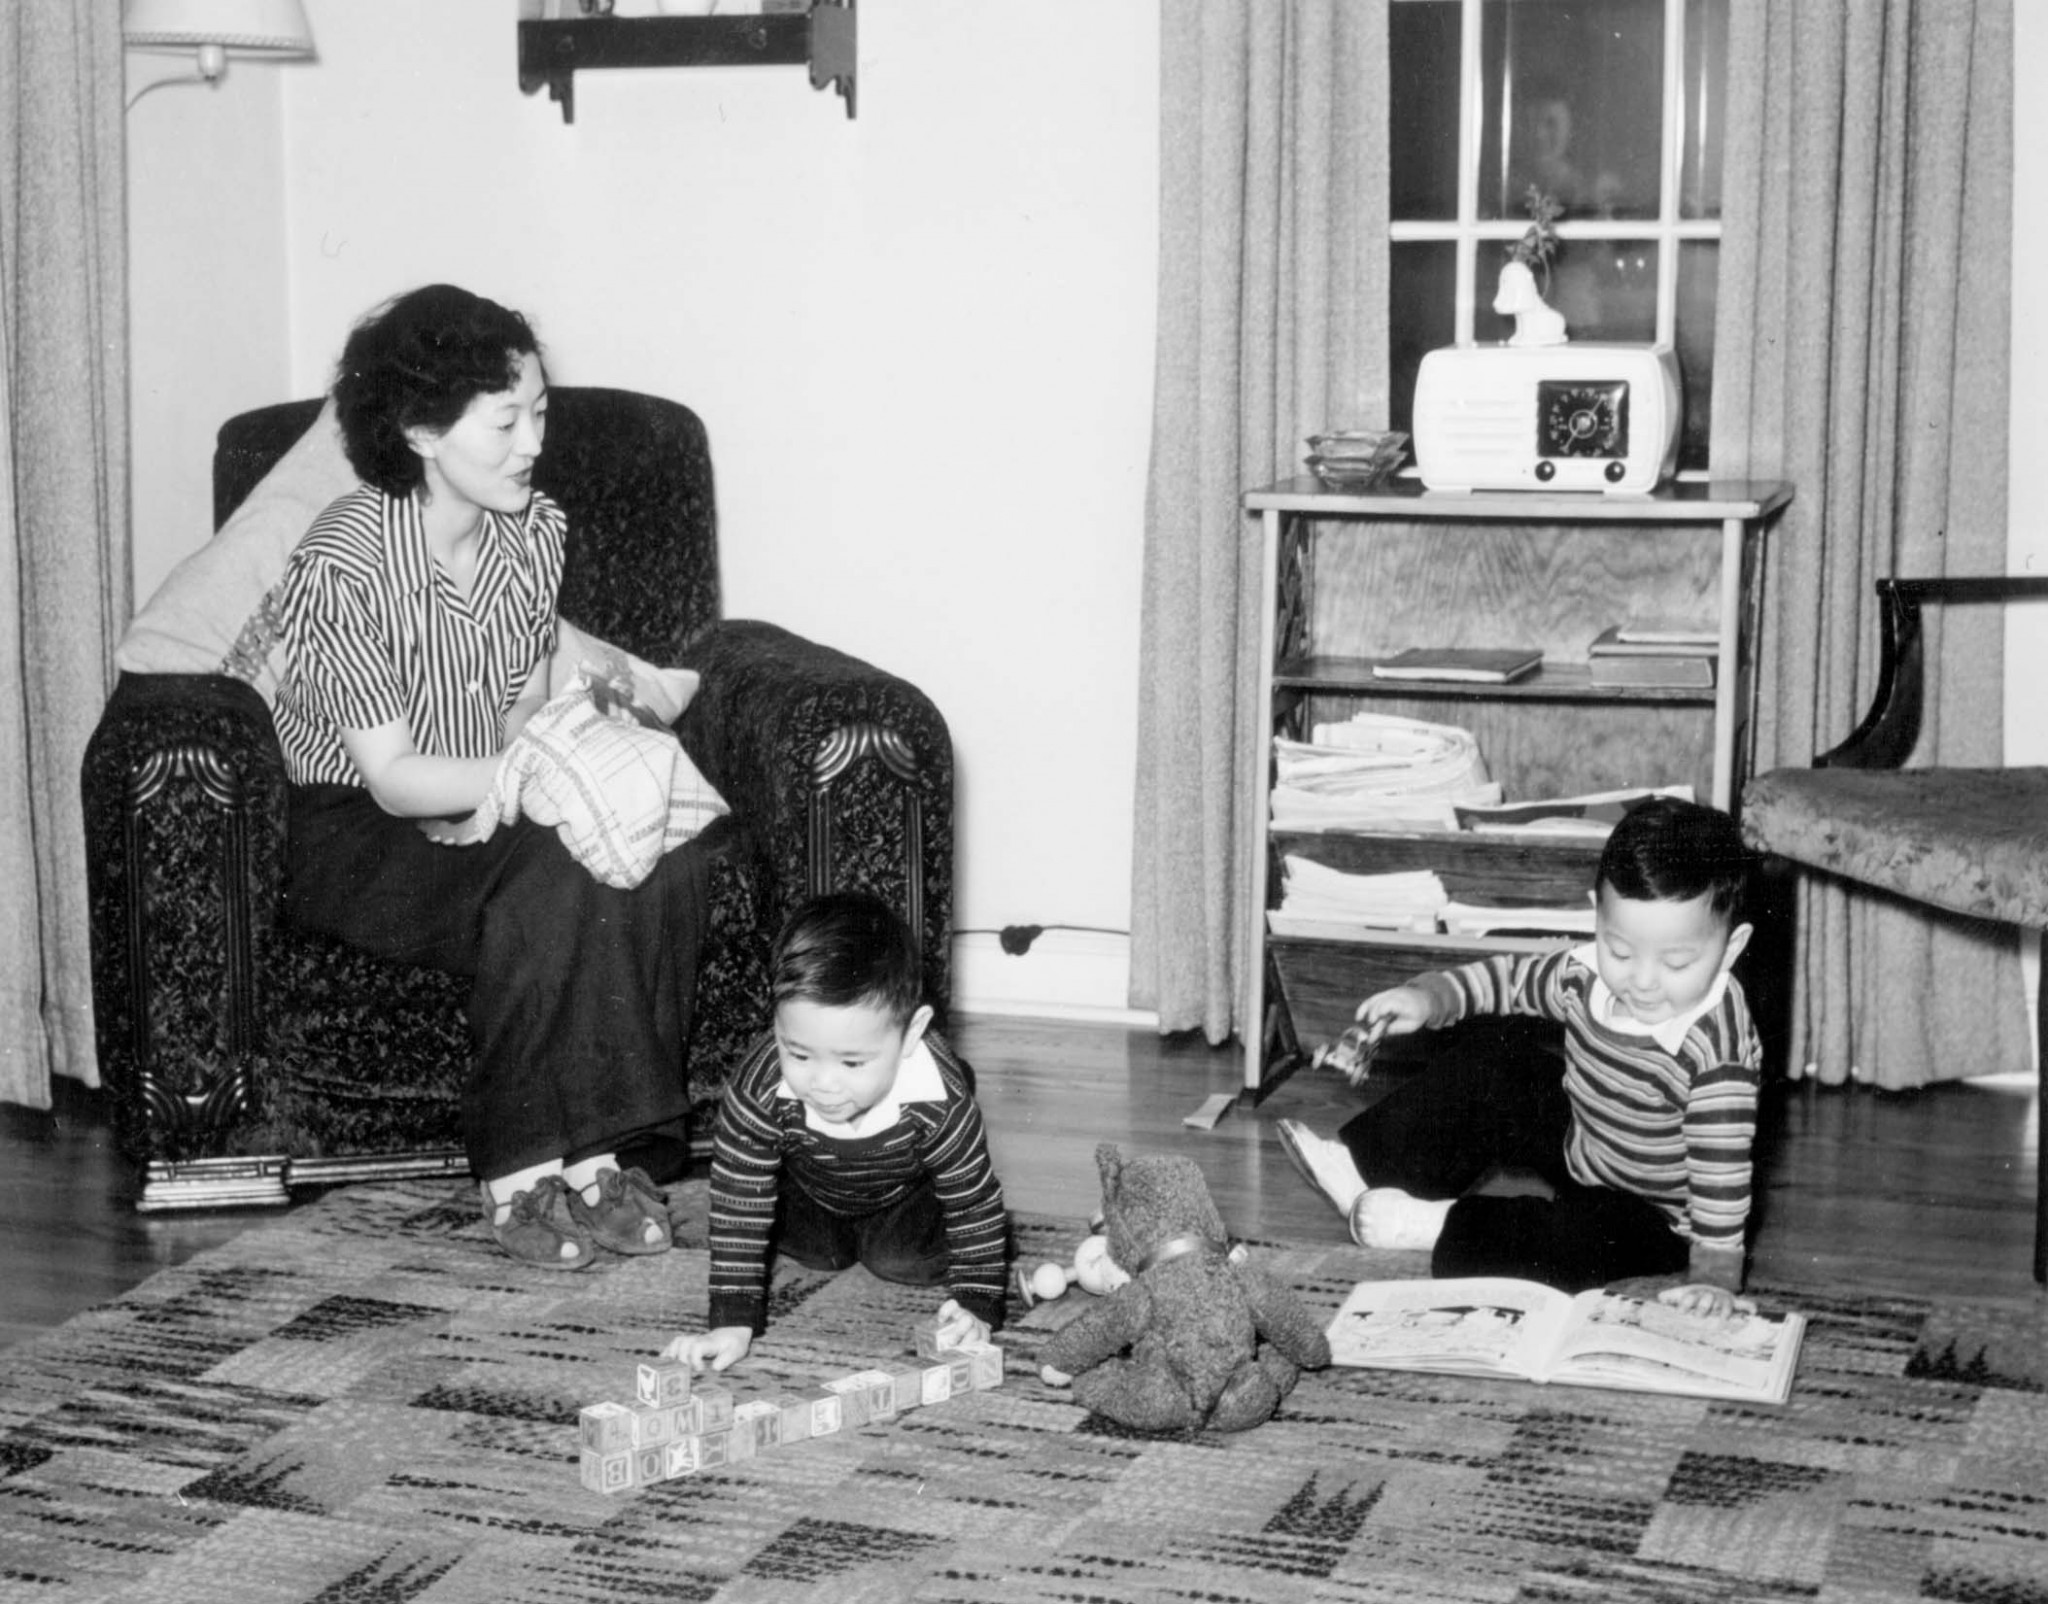 Photograph of a japanese american woman sitting on a sofa in the interior of her home, while two small boys are playing blocks and reading a book on the carpeted floor.